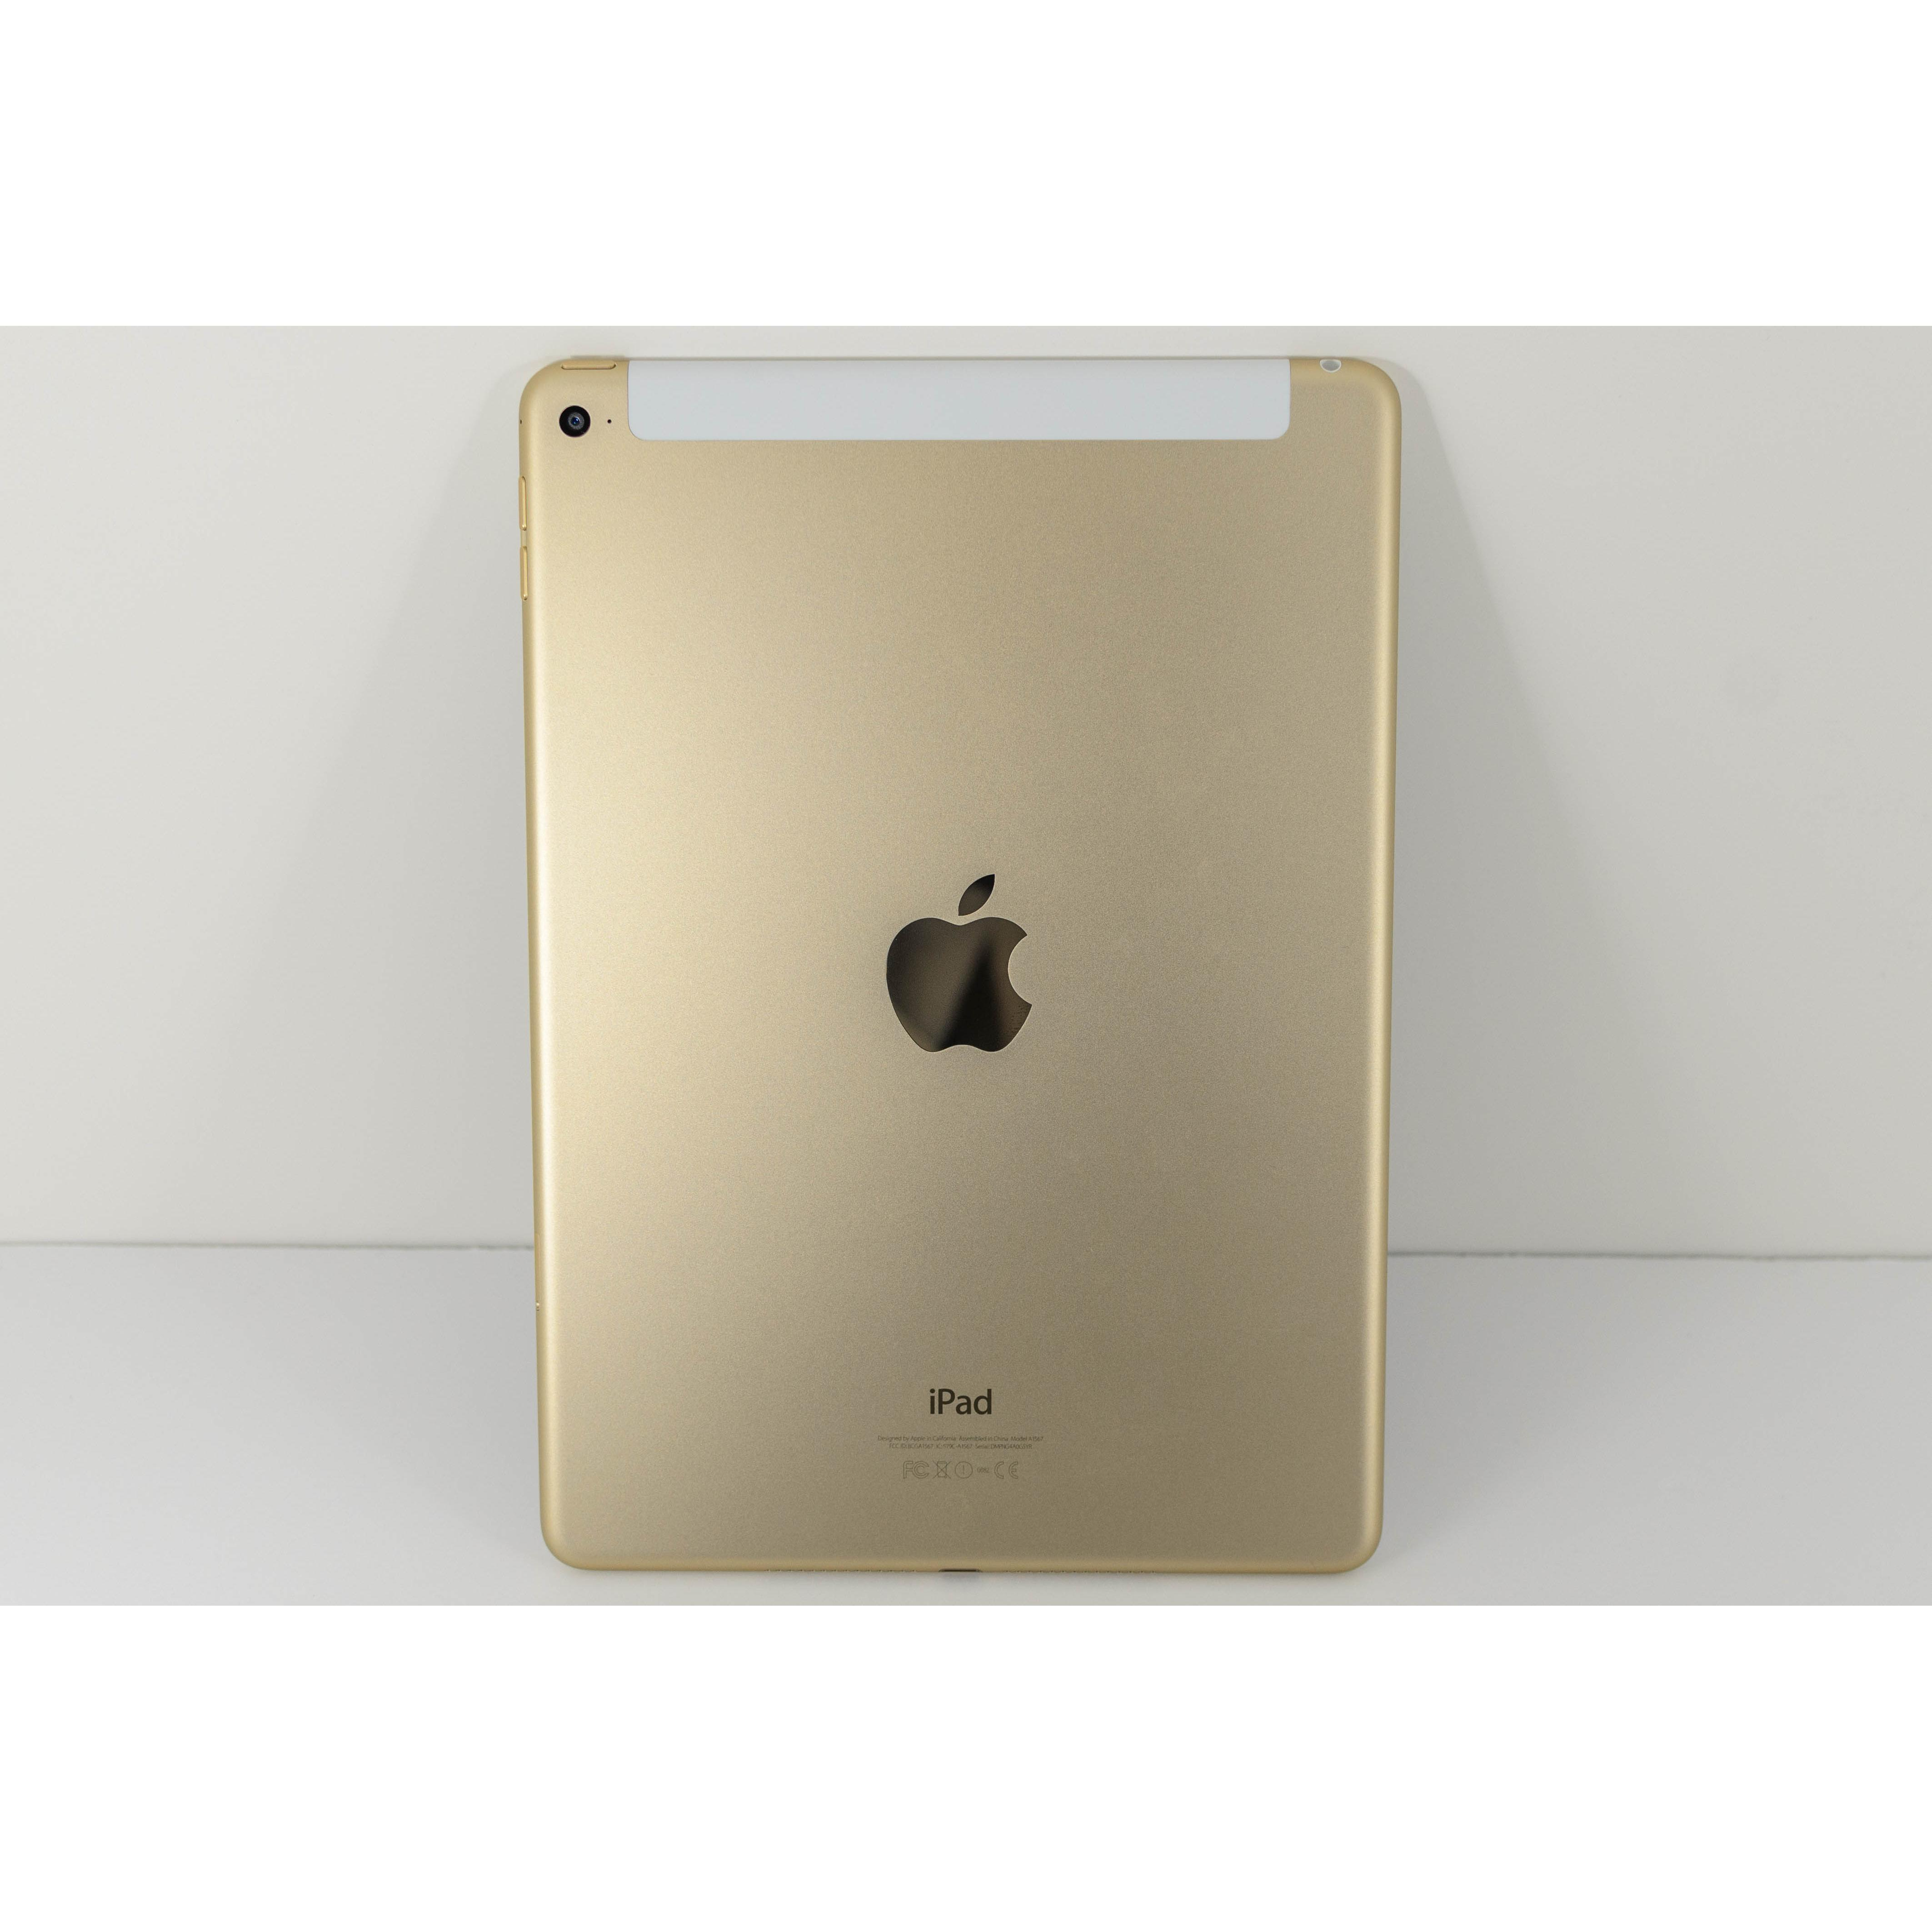 iPad Air 2 128GB - Oro - Wi-Fi